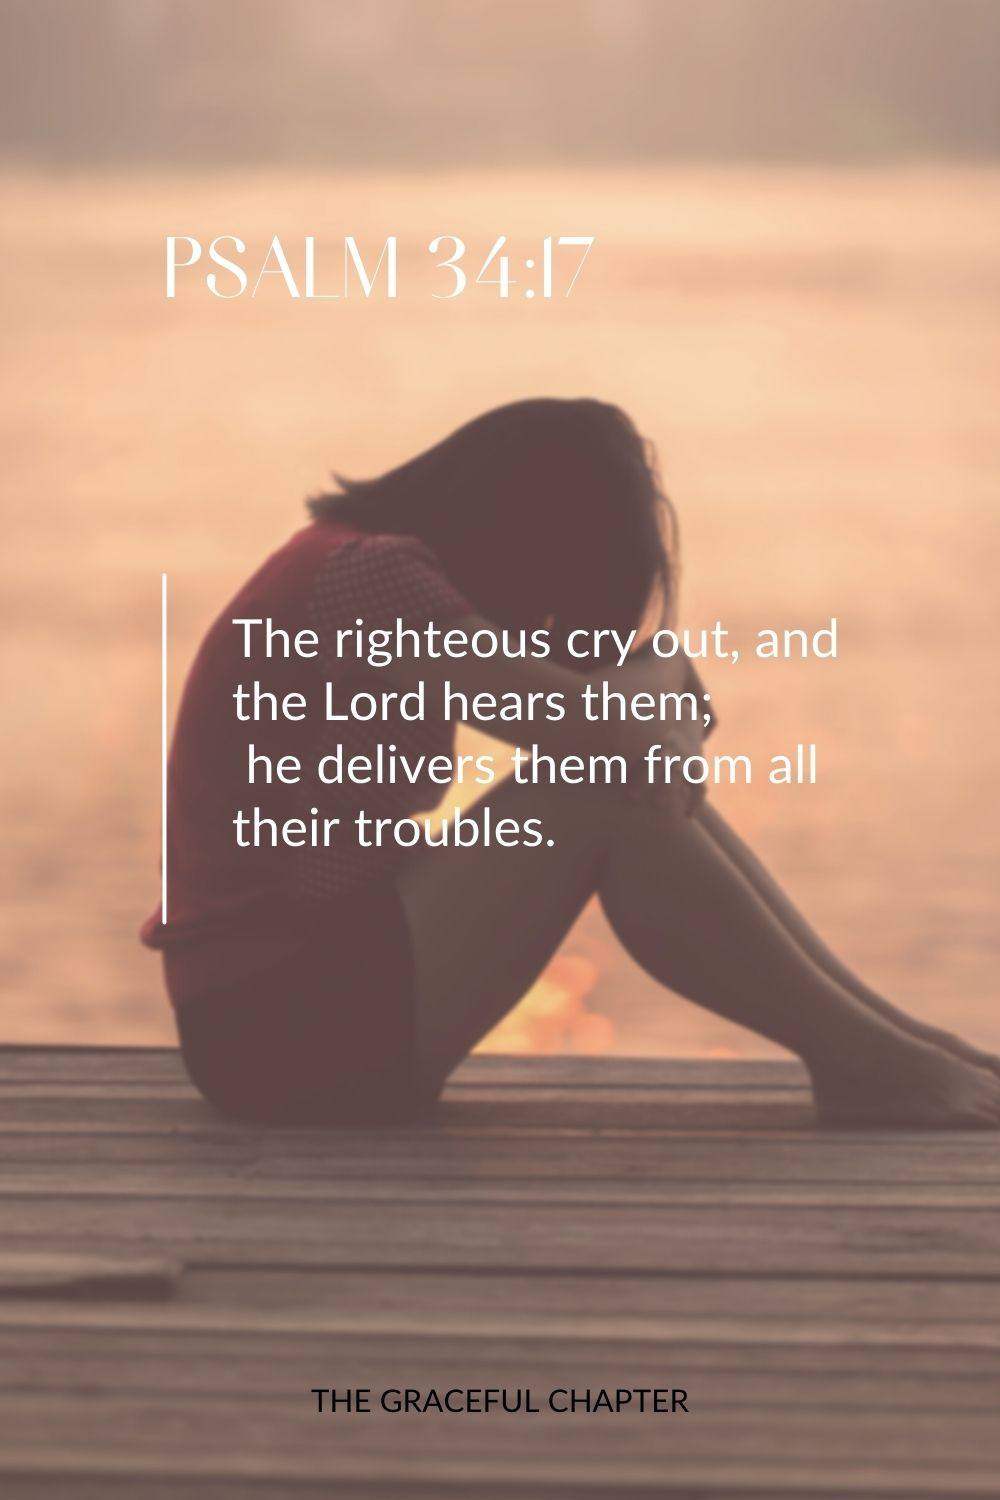 The righteous cry out, and the Lord hears them;  he delivers them from all their troubles. Psalm 34:17